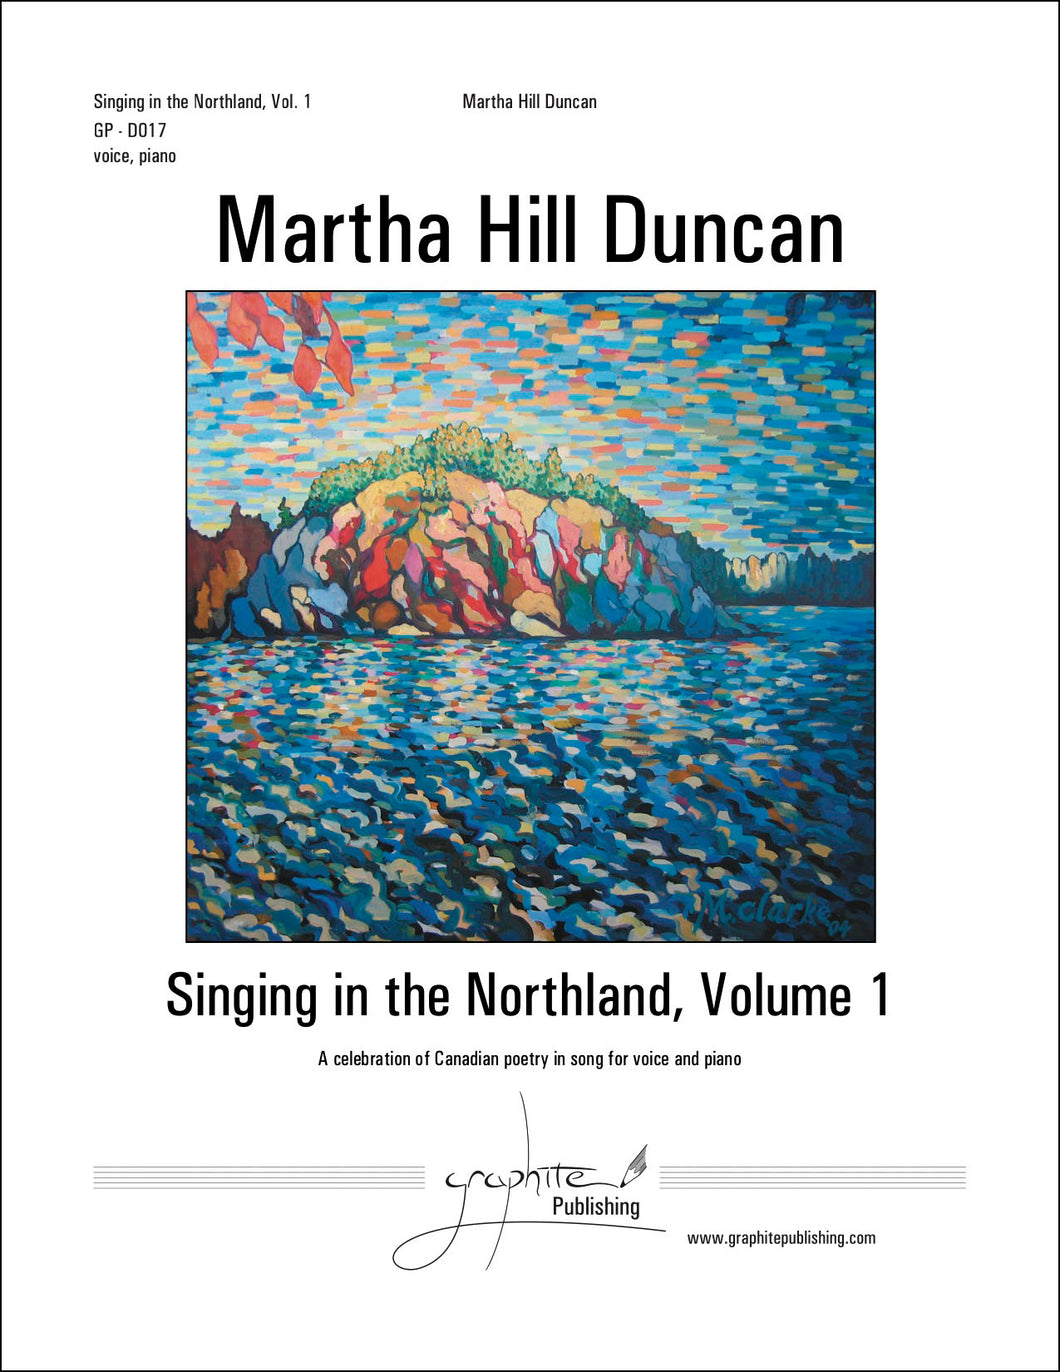 THE STAR - Medium/High Voice & Piano from SINGING IN THE NORTHLAND, VOL. 1